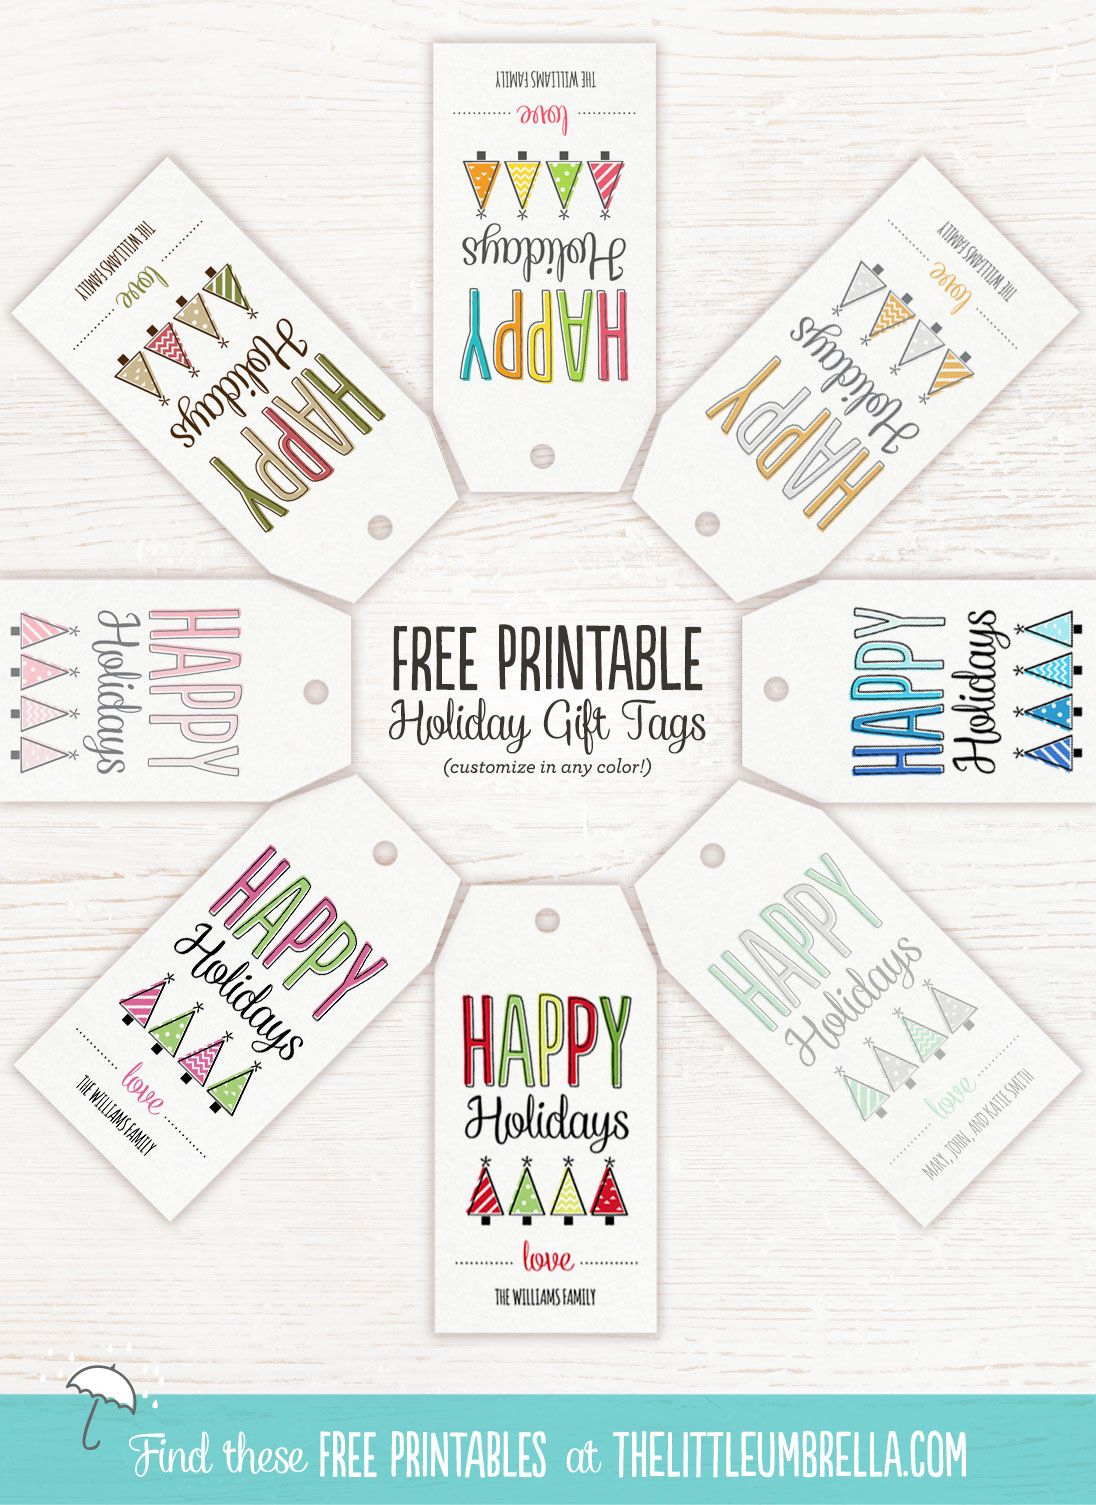 Free Printable Holiday Gift Tags At The Little Umbrella. Customize - Free Printable Customizable Gift Tags